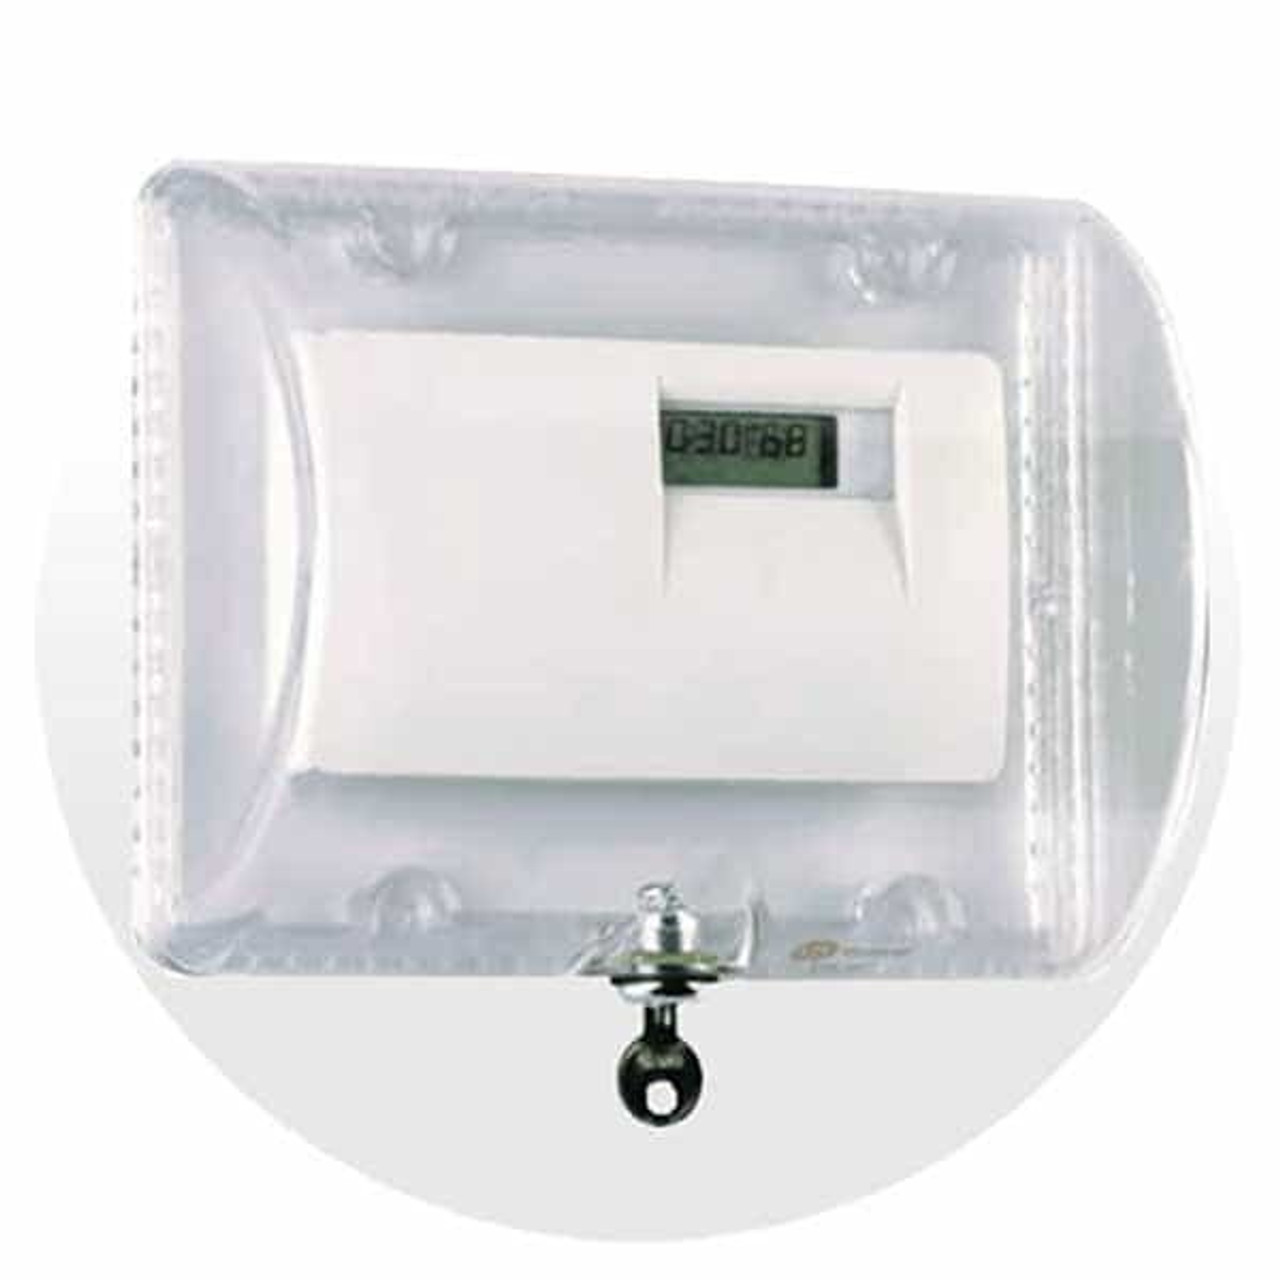 Thermostat Covers